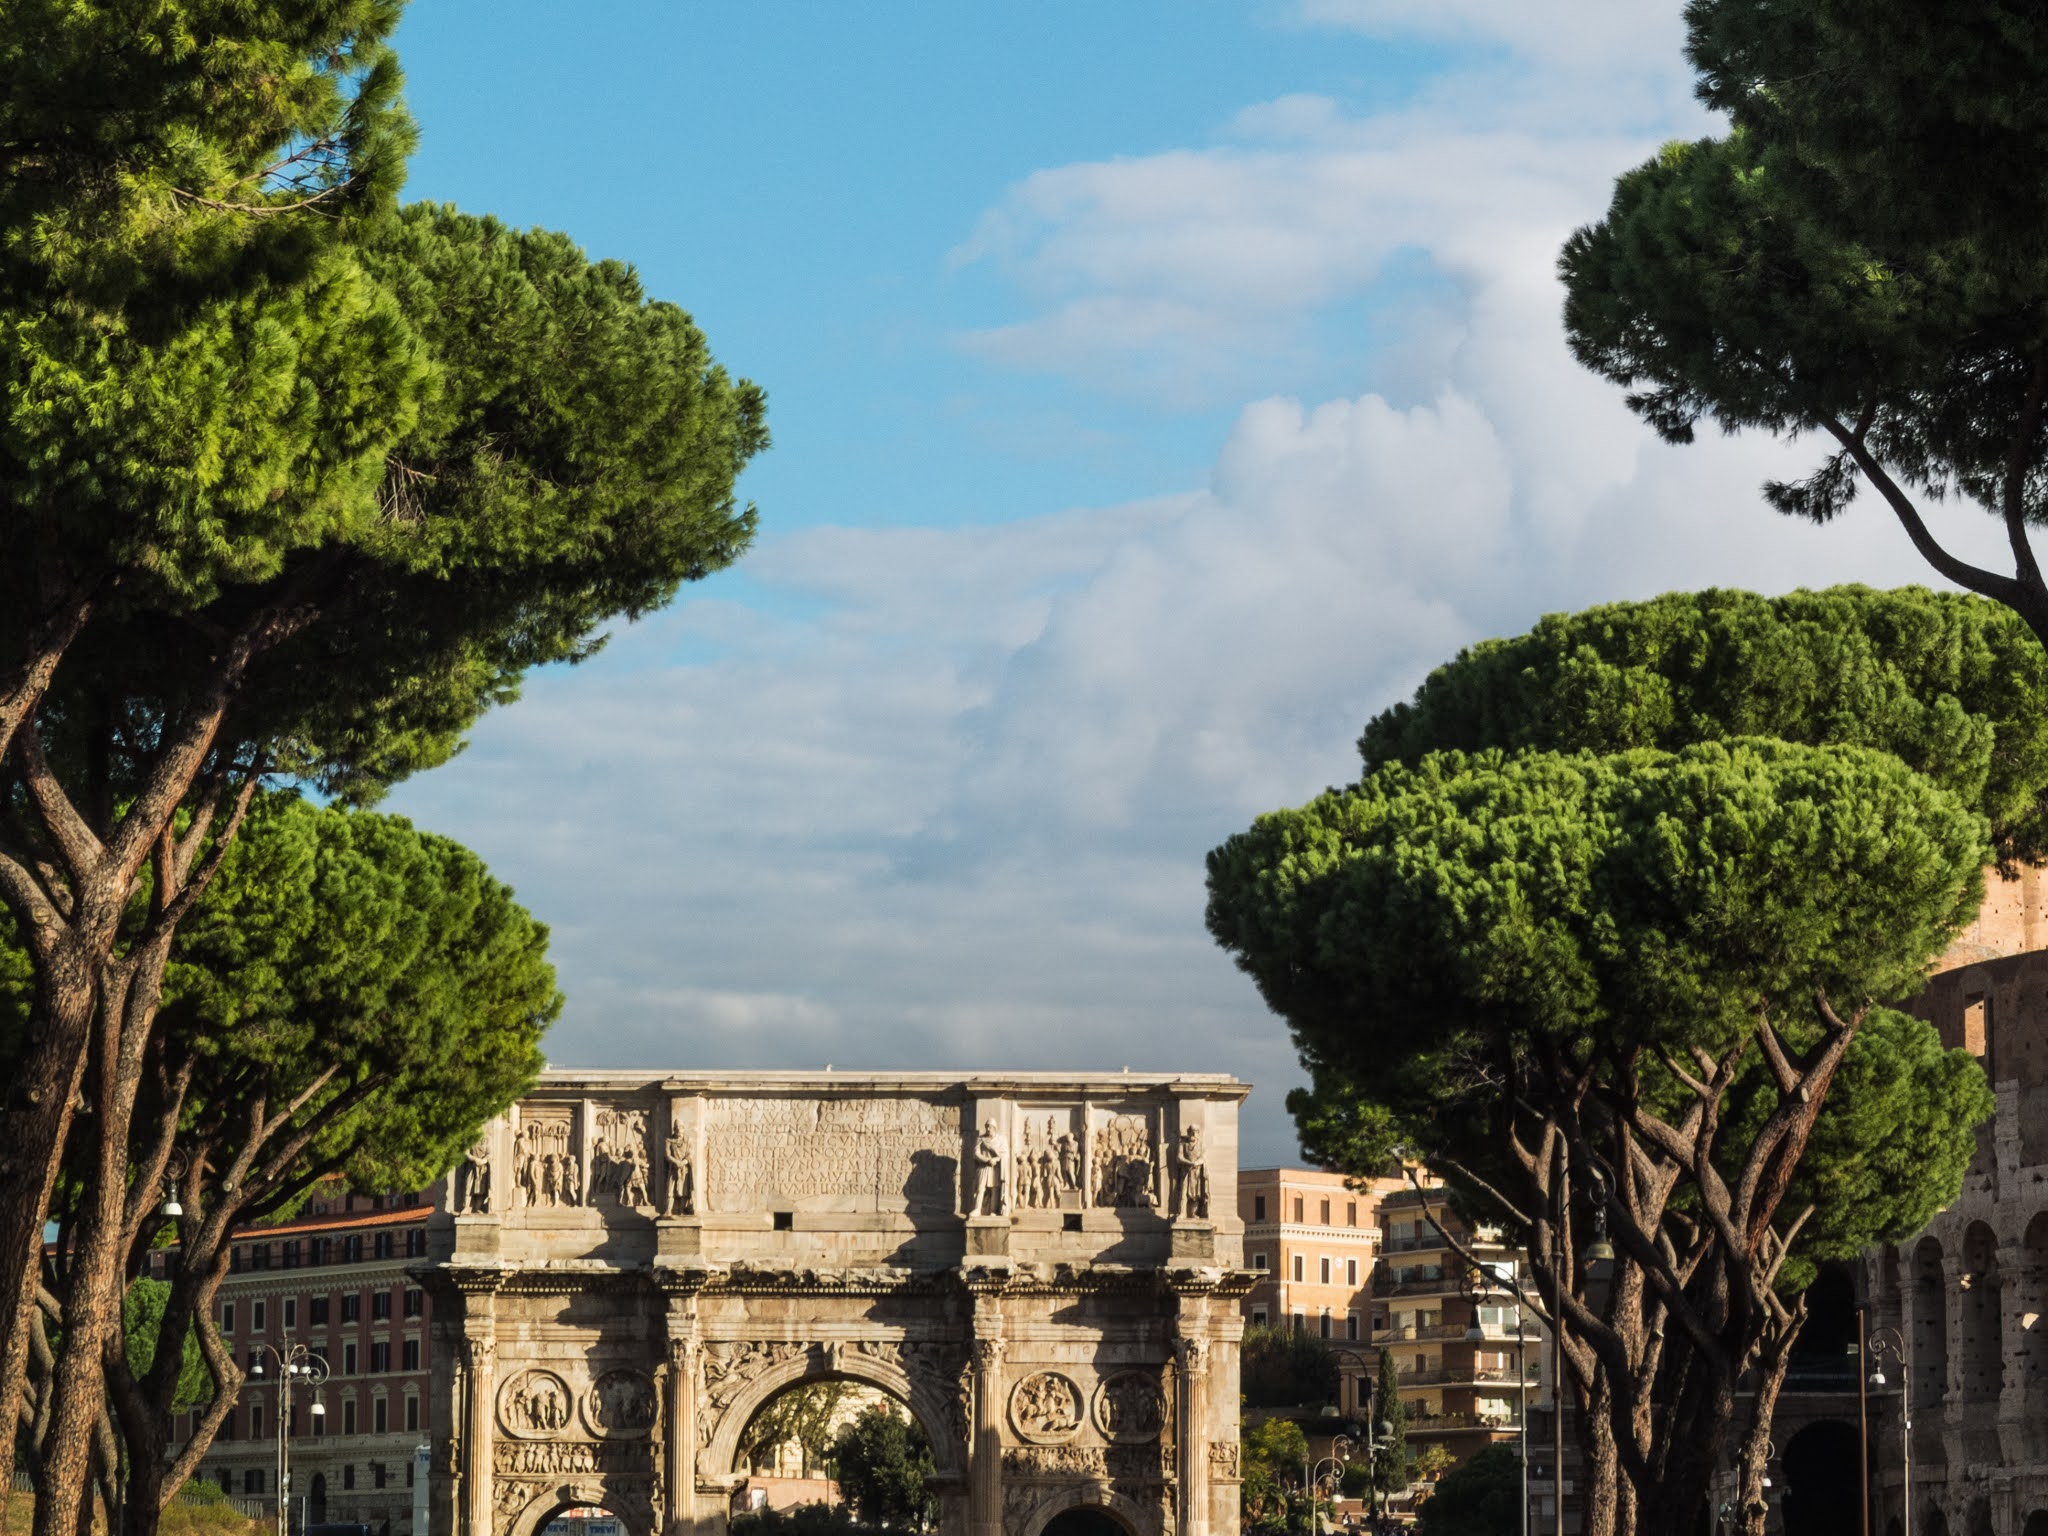 The Arch of Constantine with a row of umbrella pines on either side.